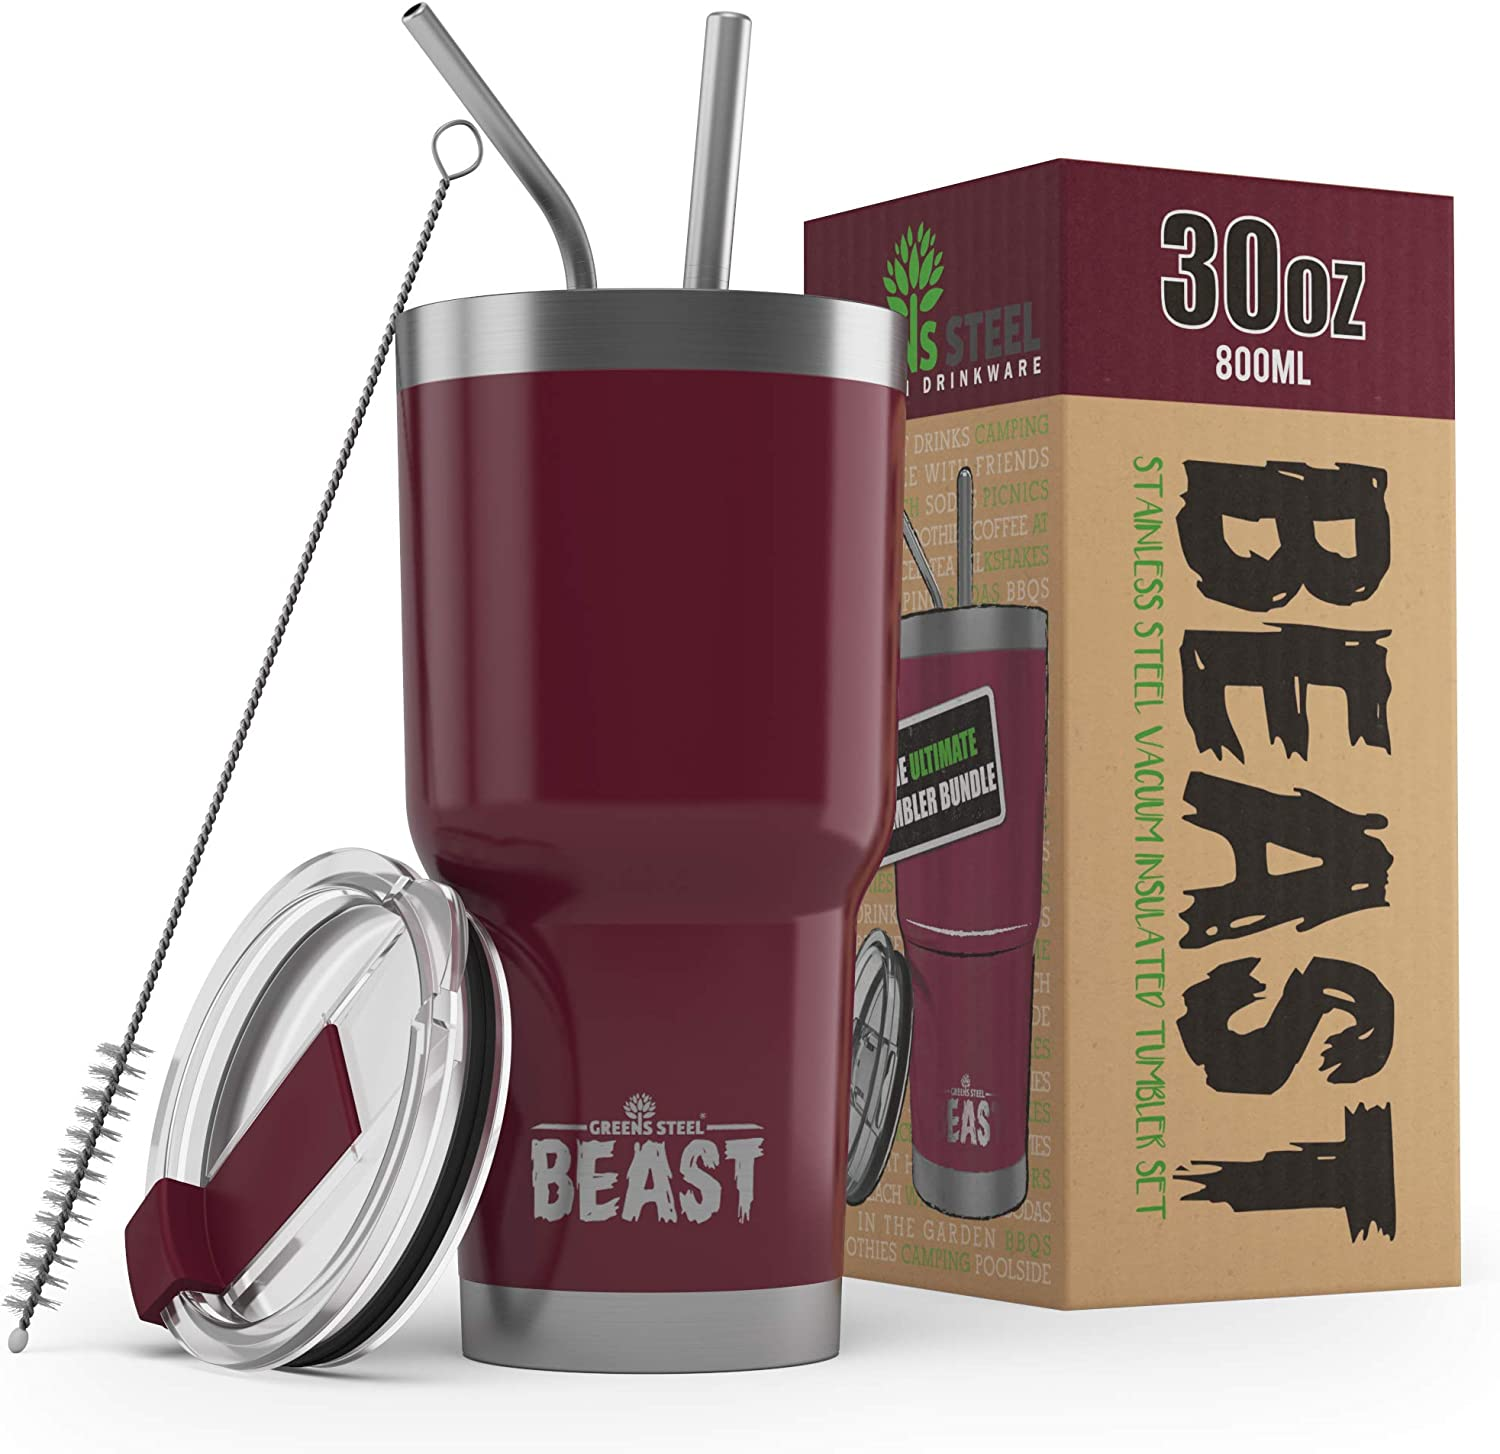 BEAST 30oz Cranberry Tumbler - Stainless Steel Vacuum Insulated Coffee Ice Cup Double Wall Travel Flask